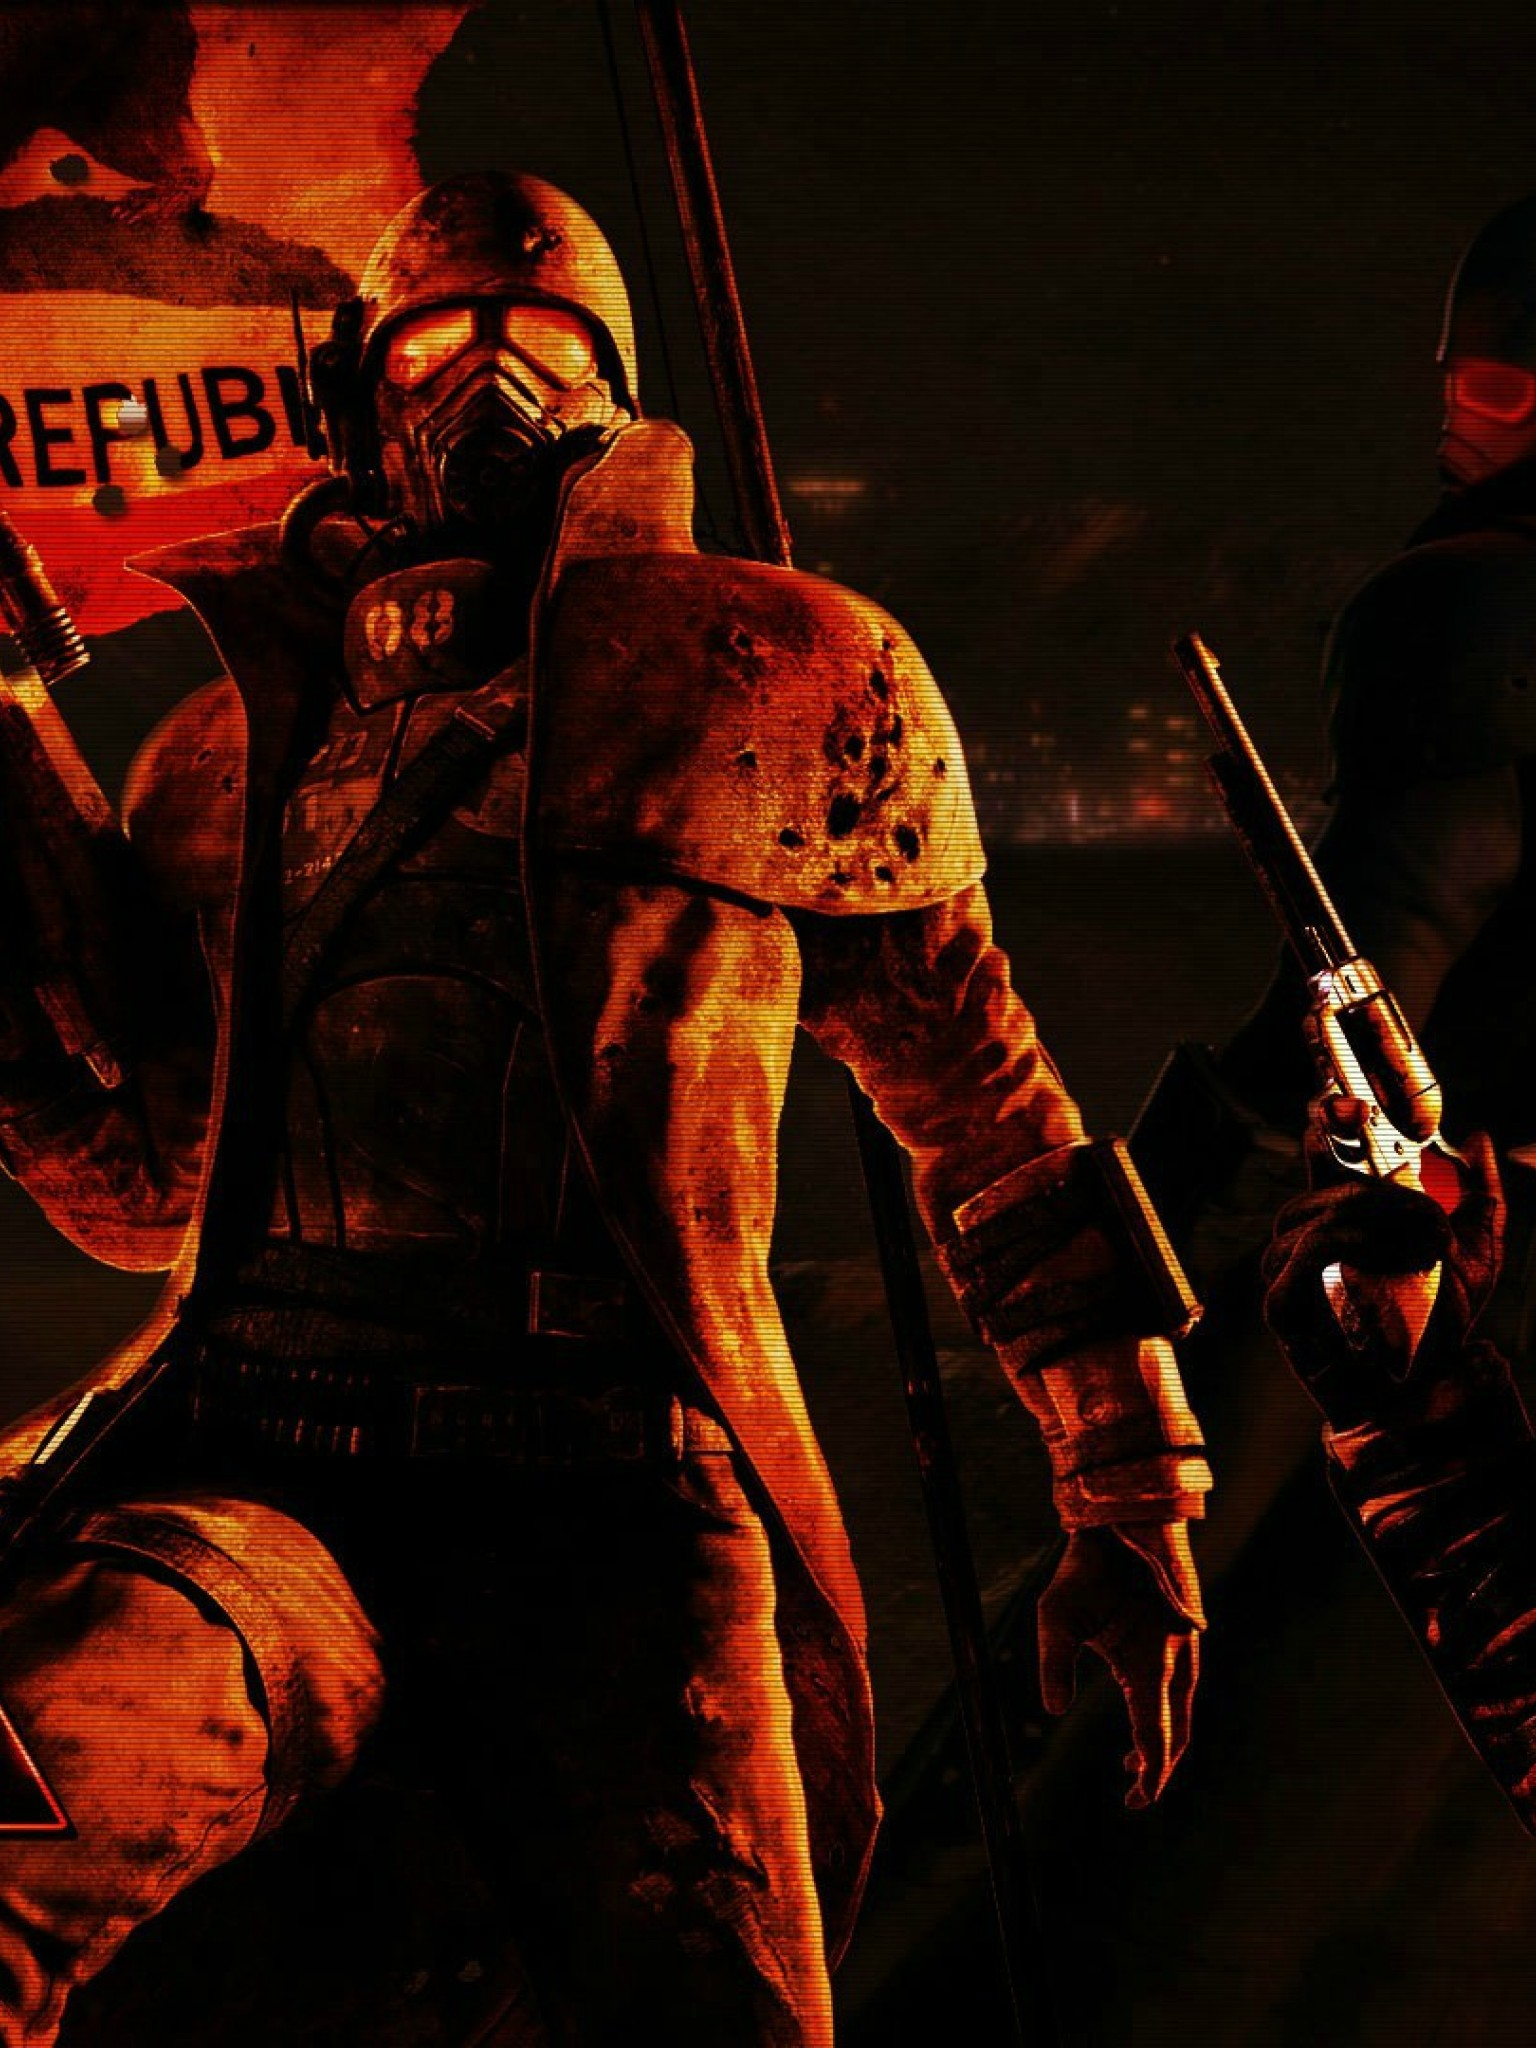 Fallout New Vegas Hd Wallpaper For Desktop And Mobiles Retina Ipad